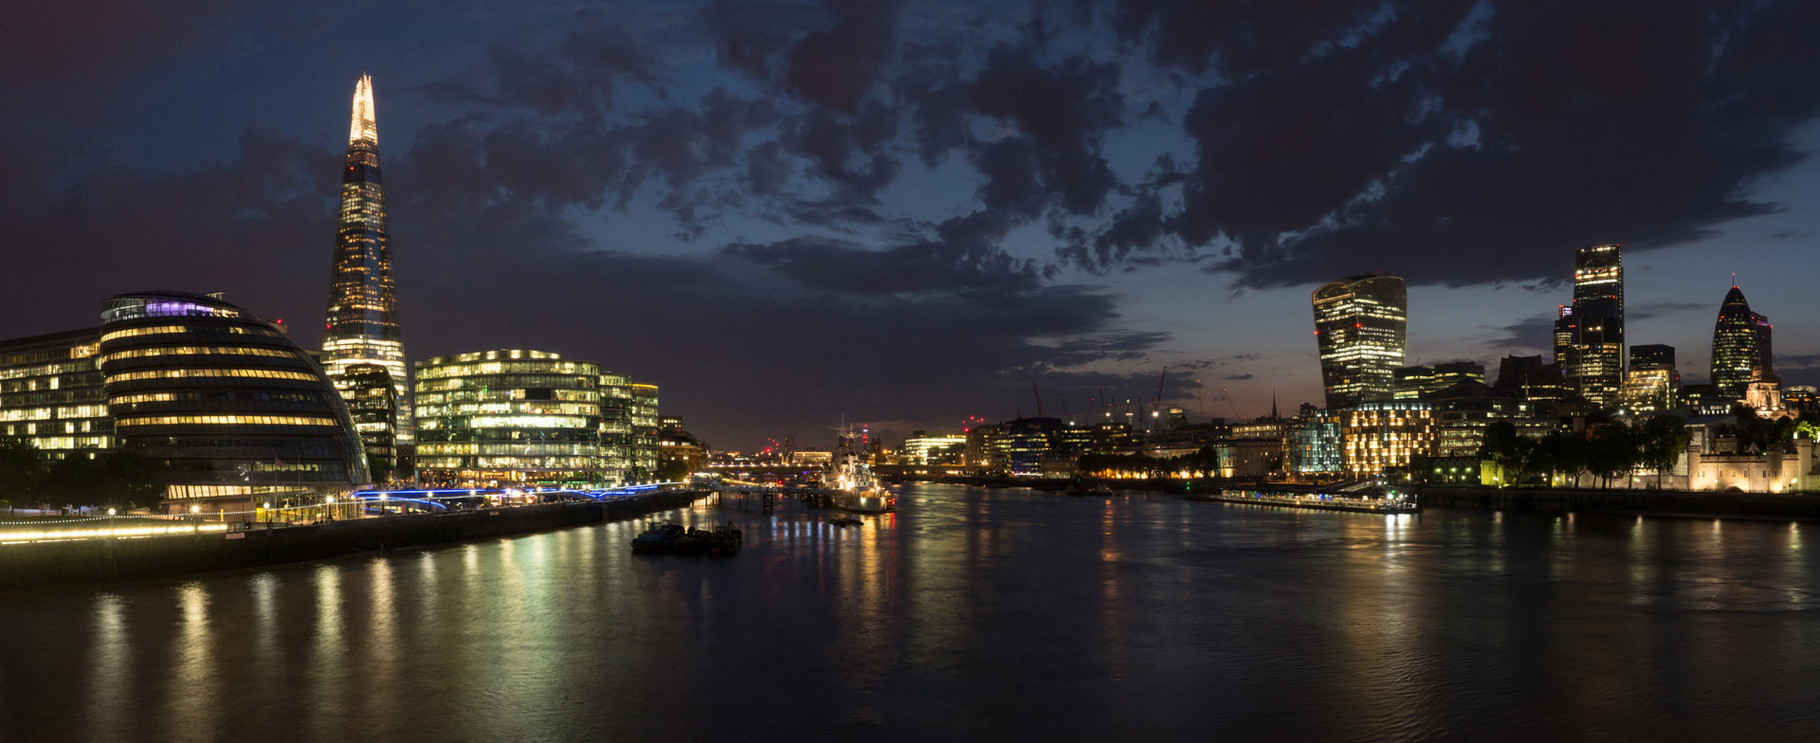 Panoramic view from Tower bridge, London